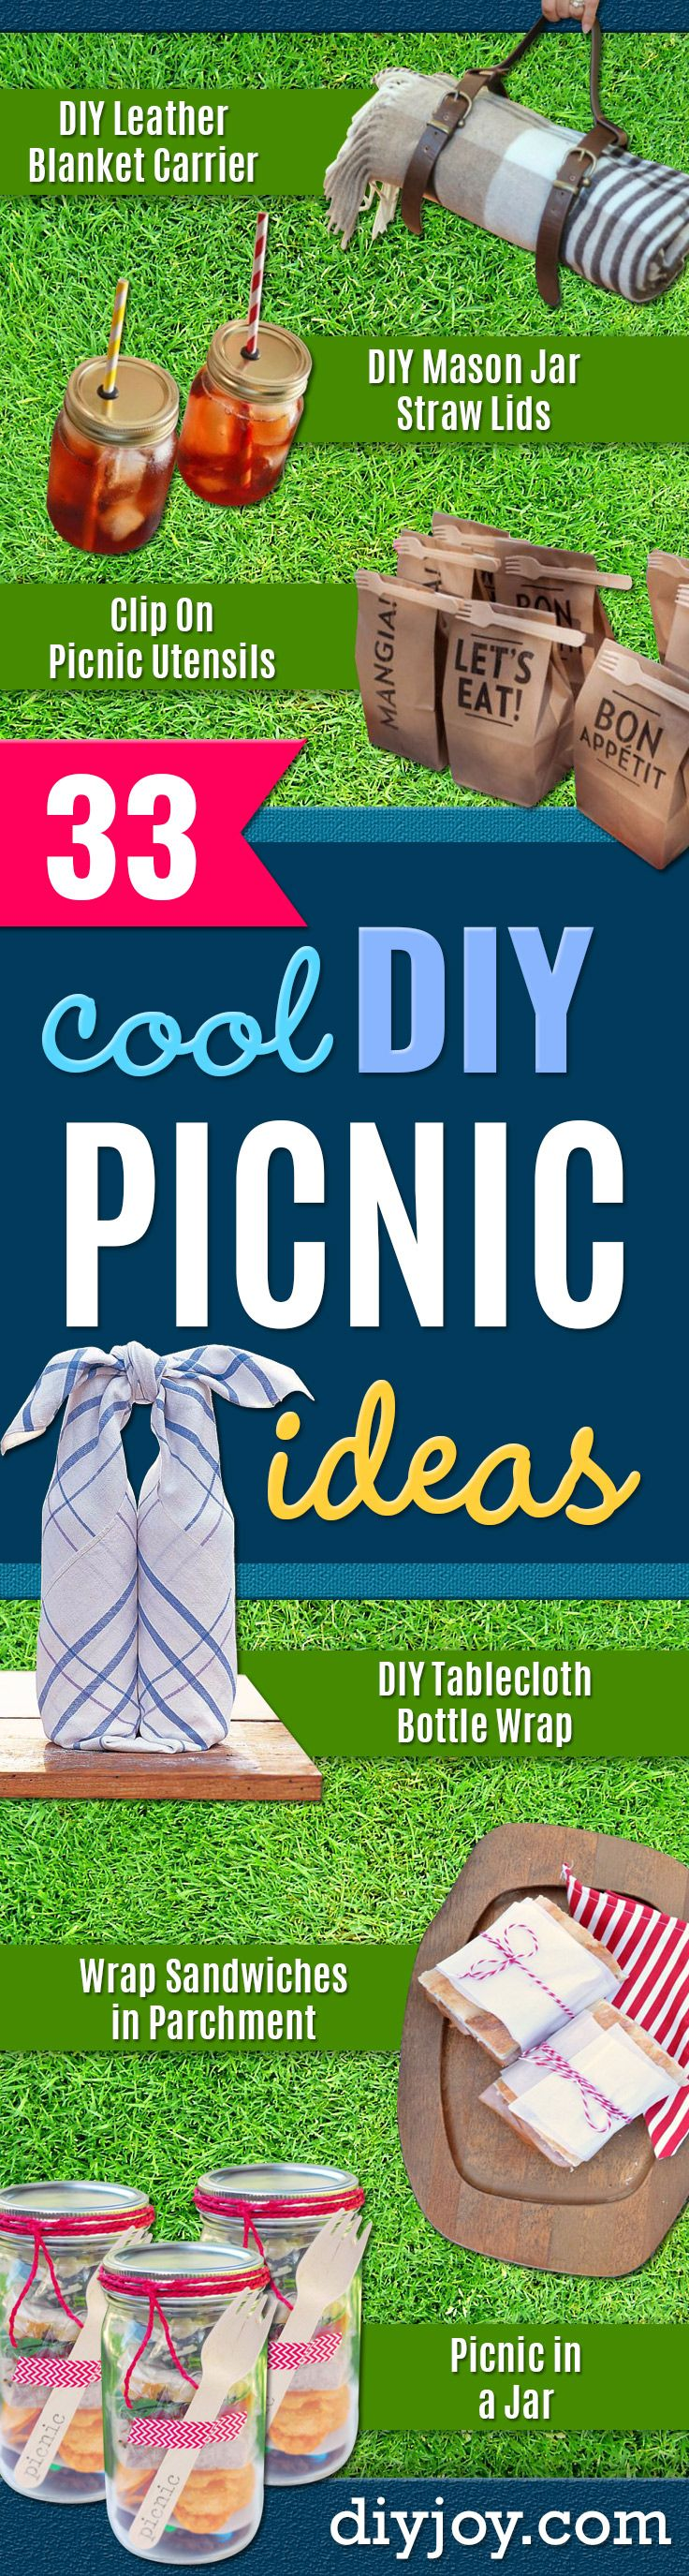 DIY Picnic Ideas - Cool Recipes and Tips for Picnics and Meals Outdoors - Recipes, Easy Sandwich Wraps, Blankets, Baskets and Carriers to Make for Fun Family Outings and Romantic Date Ideas - Mason Jar Drinks, Snack Holders, Utensil Caddy and Picnic Hacks http://diyjoy.com/diy-picnic-ideas